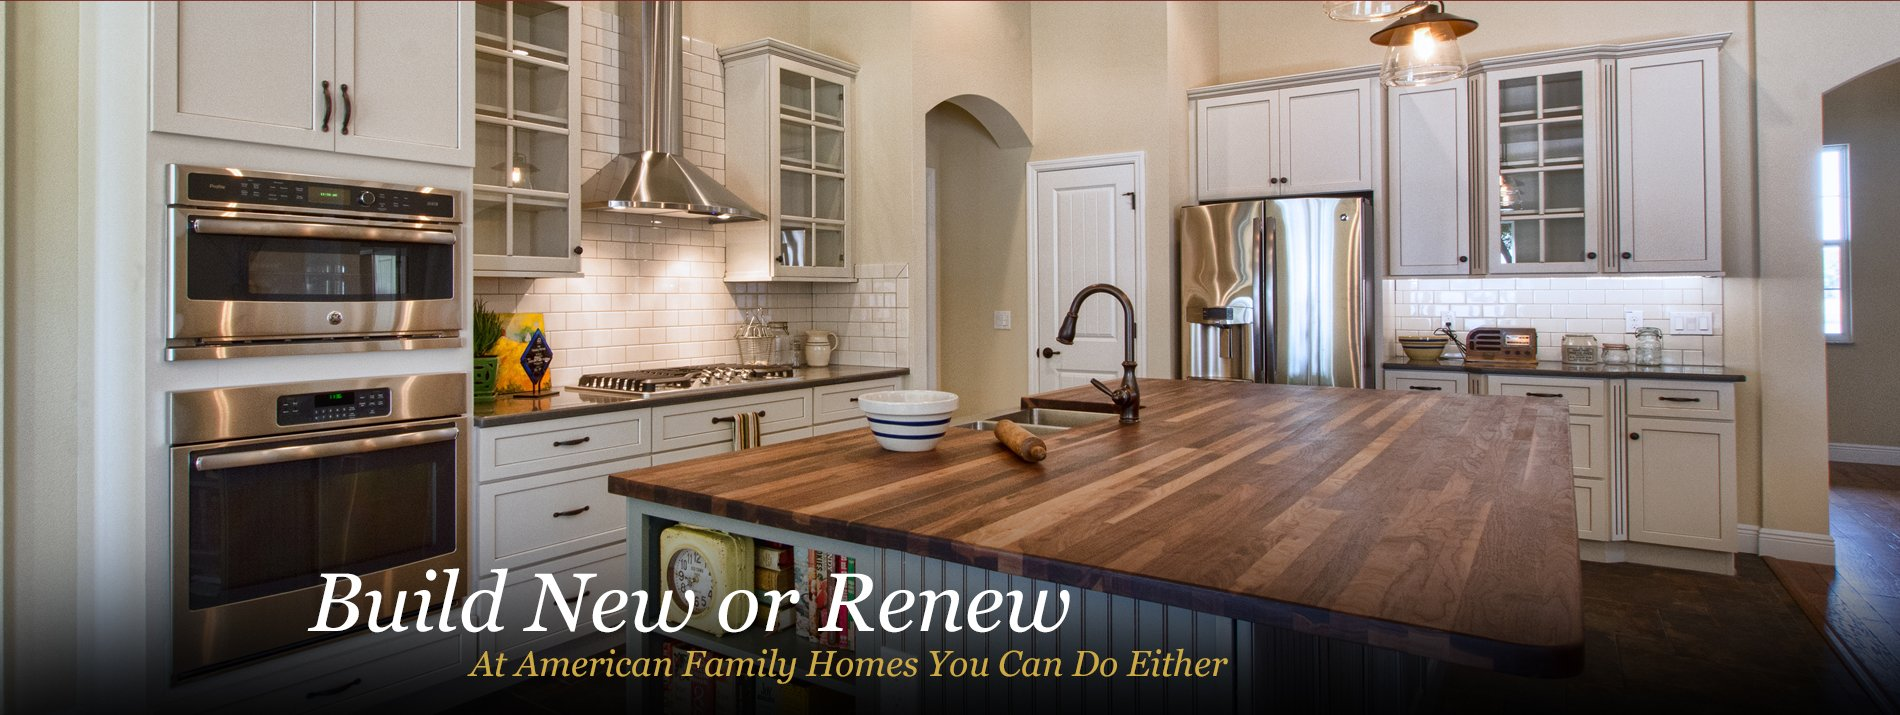 Central florida home builders american family homes